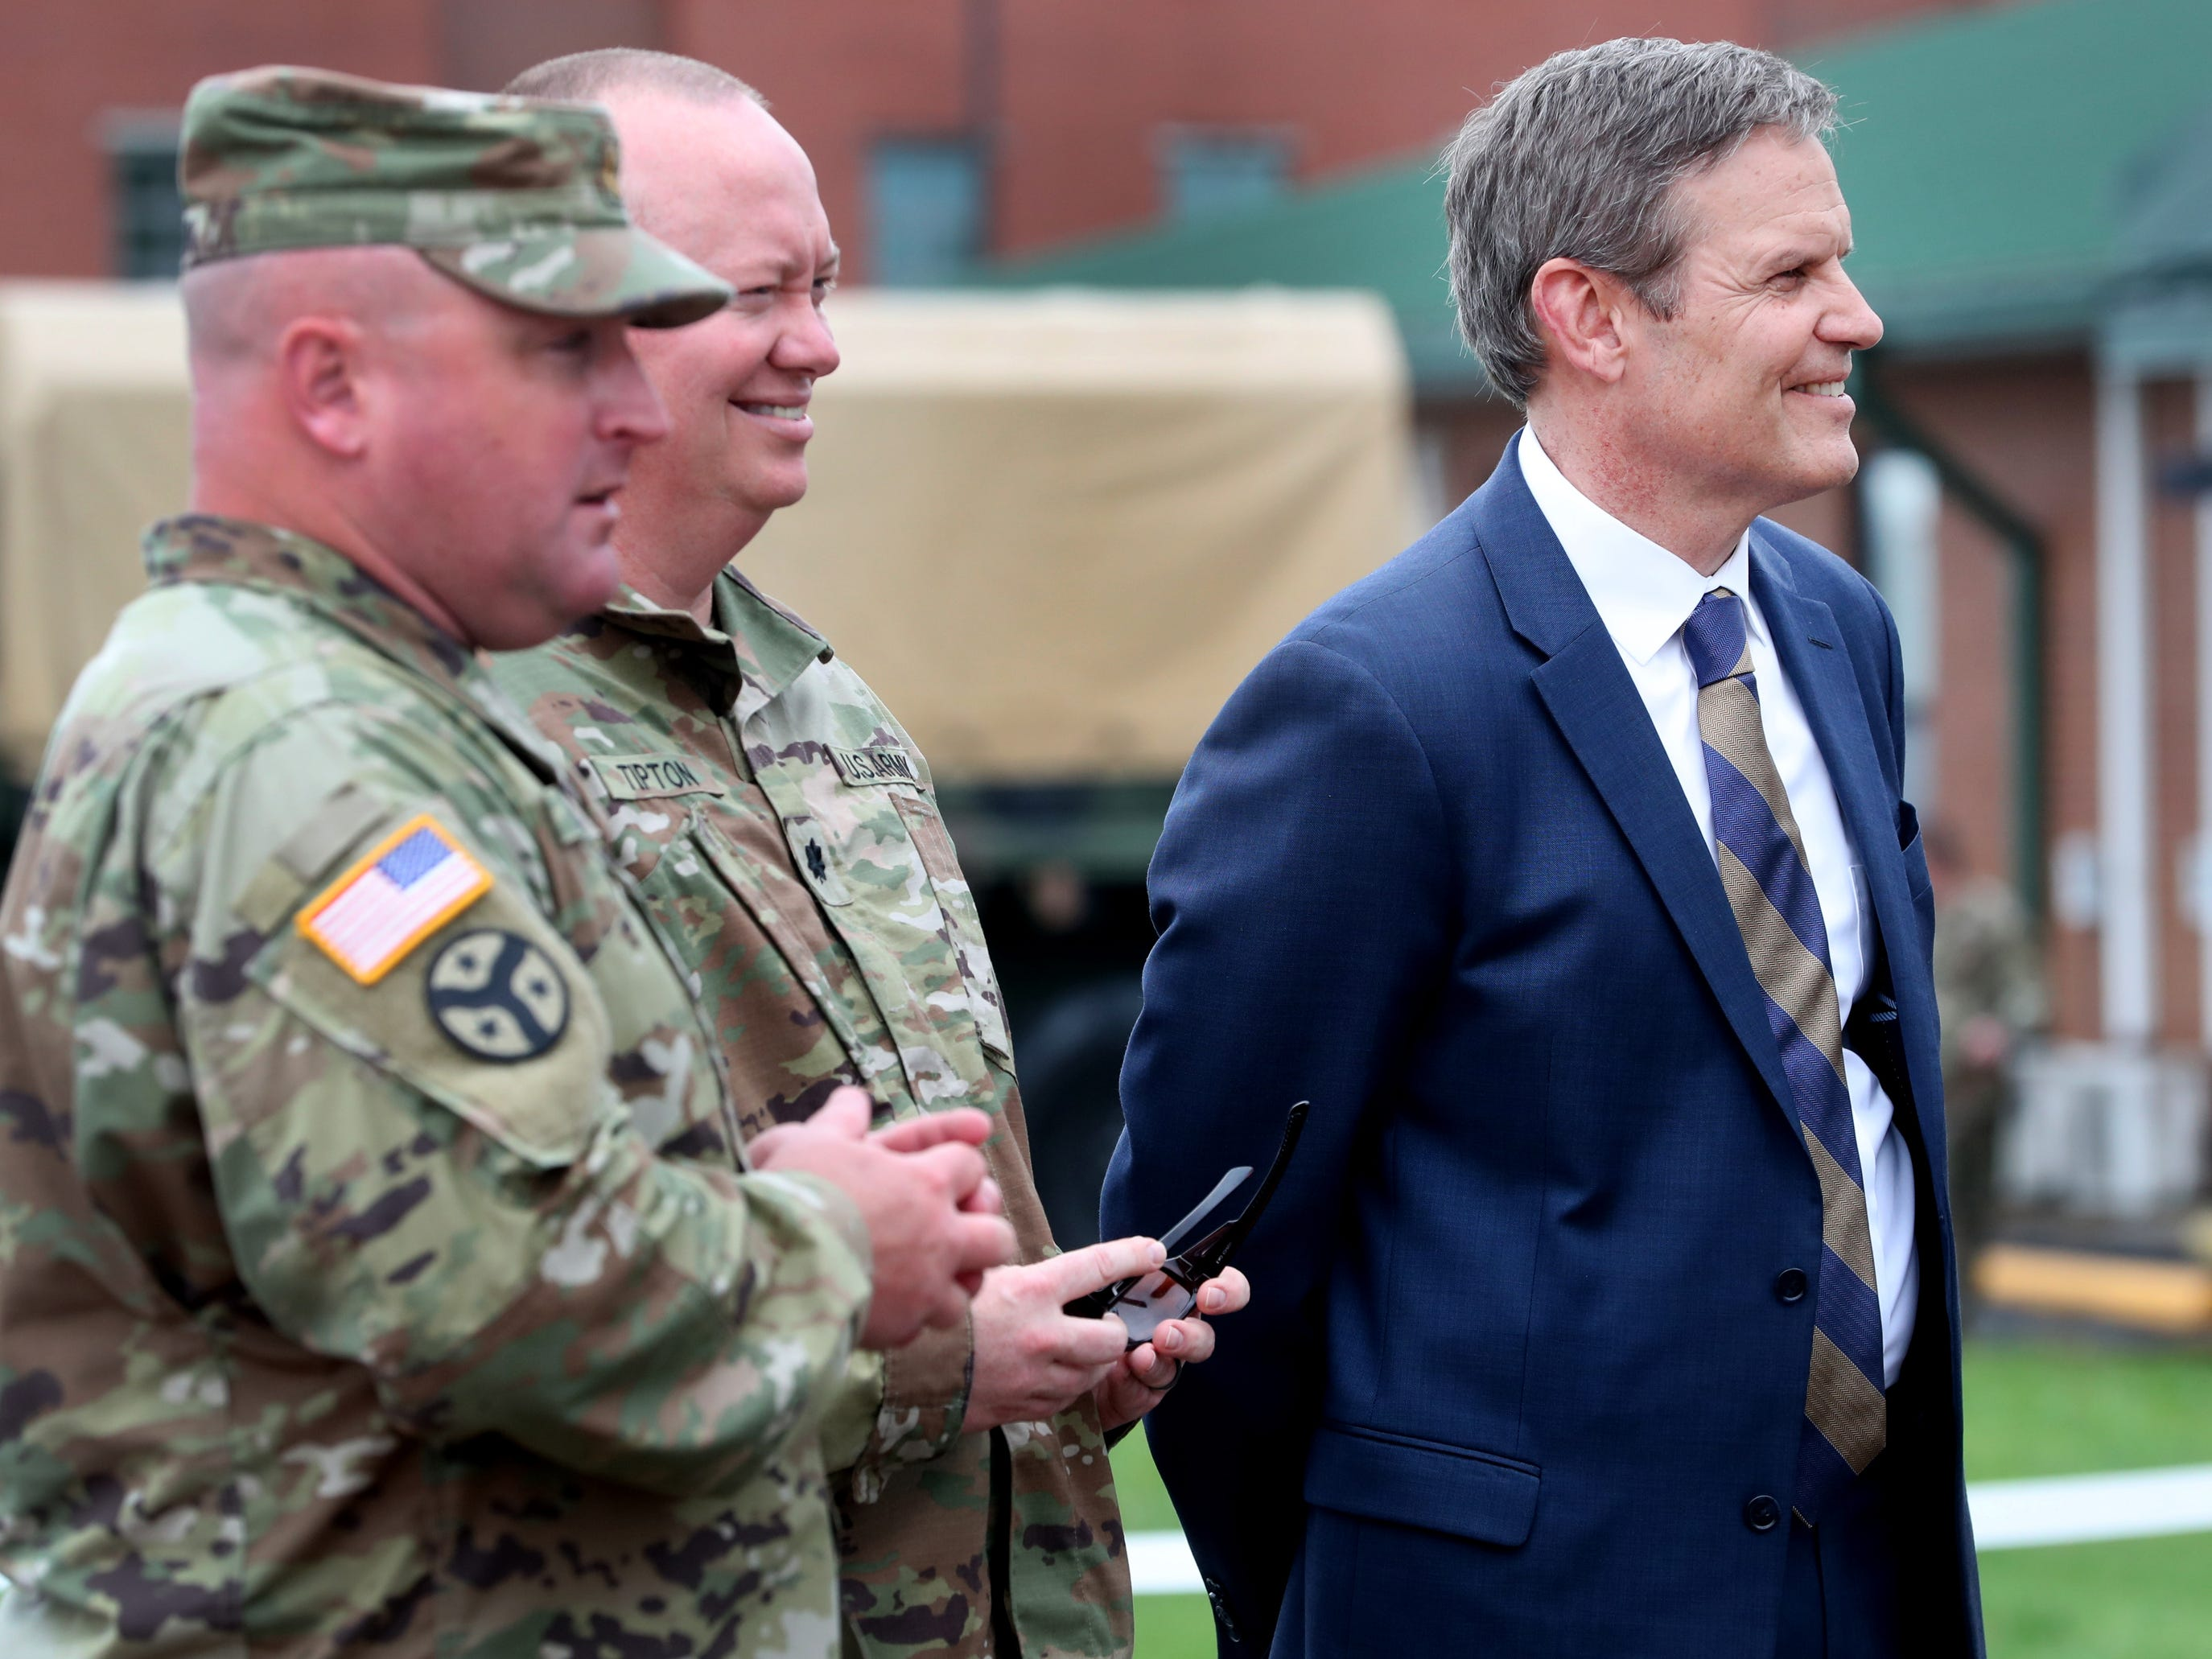 Tennessee Governor Bill Lee waits to talk to the returning troops with the 278th ACR after their plane landed at the Volunteer Training Site in Smyrna, Tennessee on Thursday, May 9, 2019 after they served a 9 month overseas deployment.